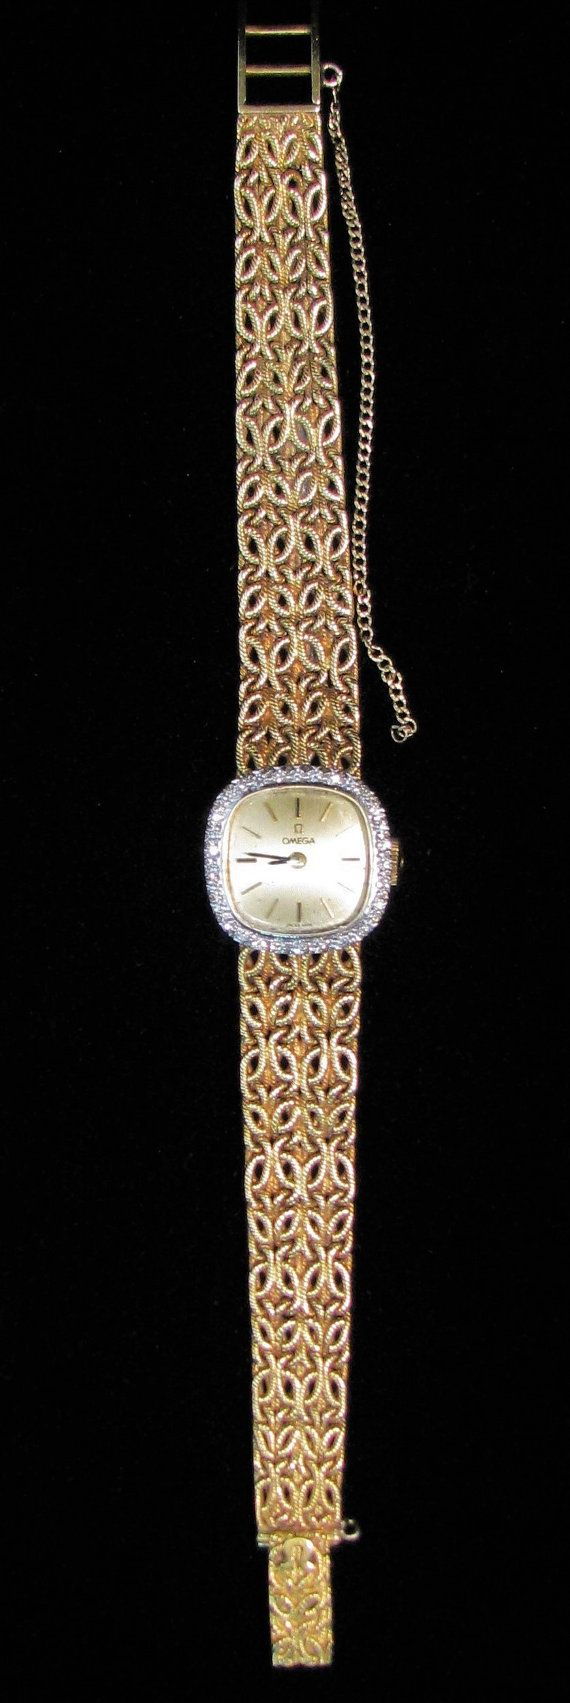 Vintage Omega 18k Gold Ladies Watch Elegant By Cristinasjewelers 4295 00 Womens Watches Fashion Watches Vintage Omega